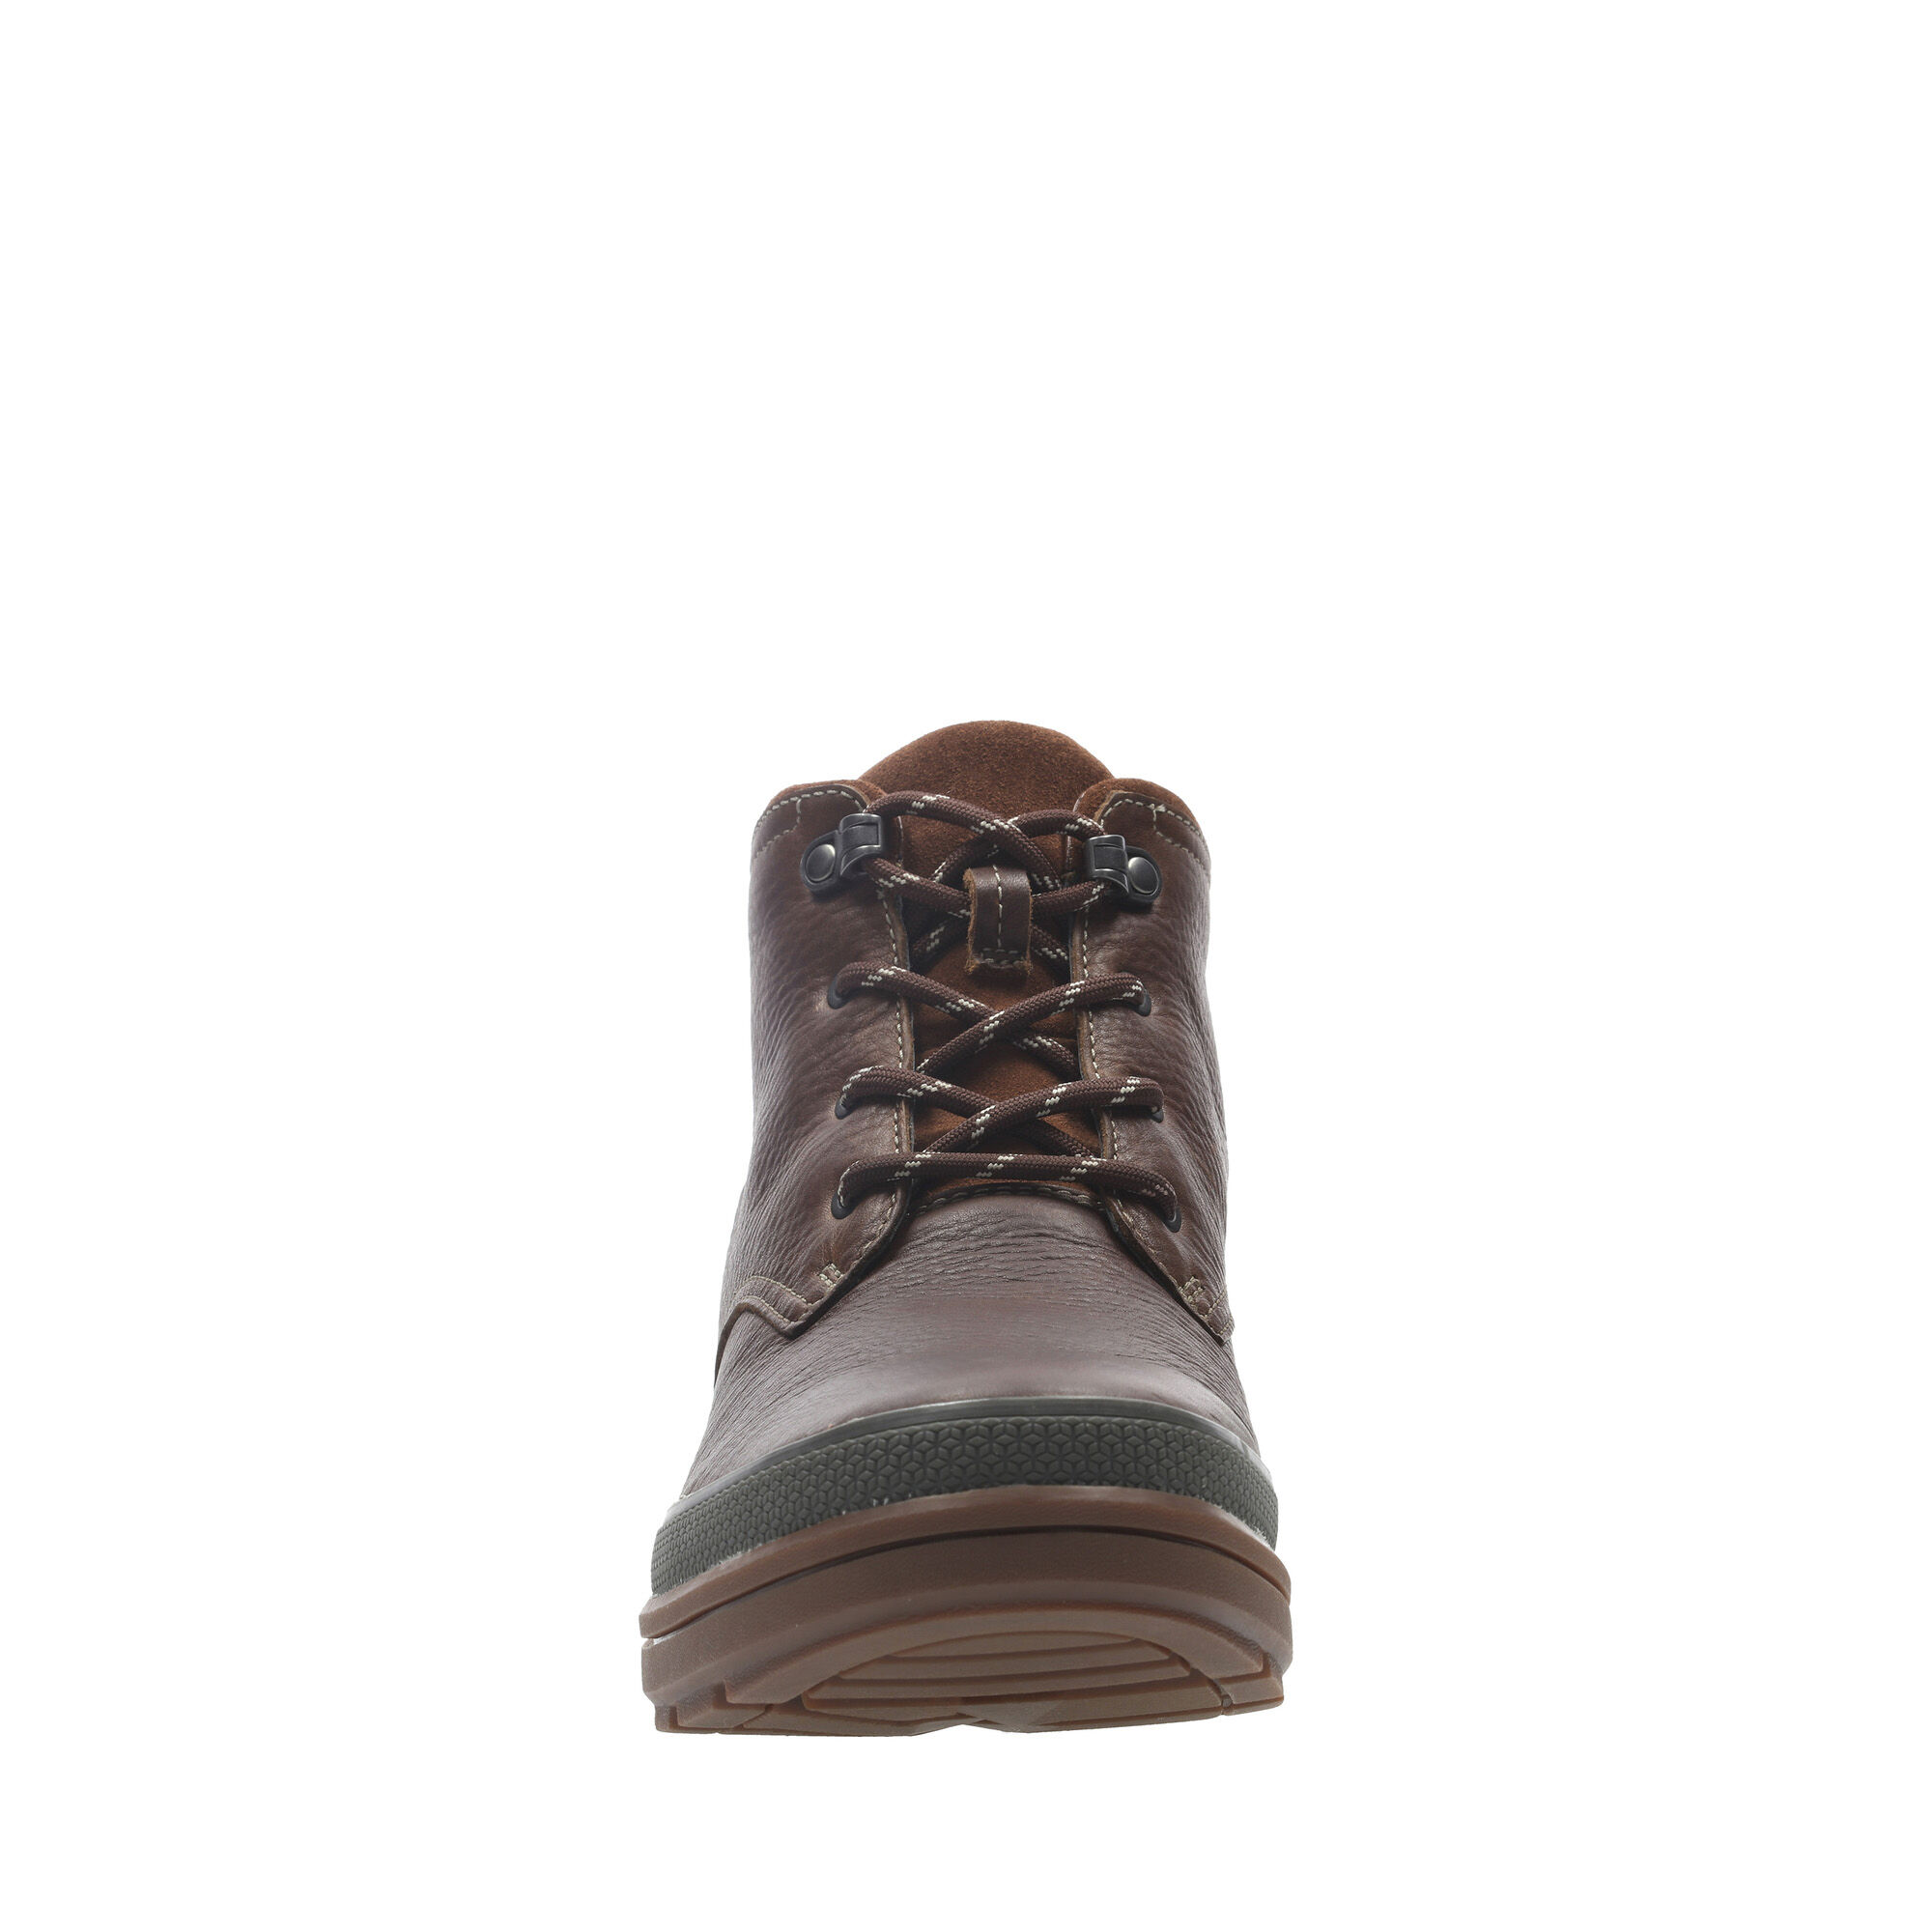 Rushway Mid GORE TEX British Tan Leather   Clarks